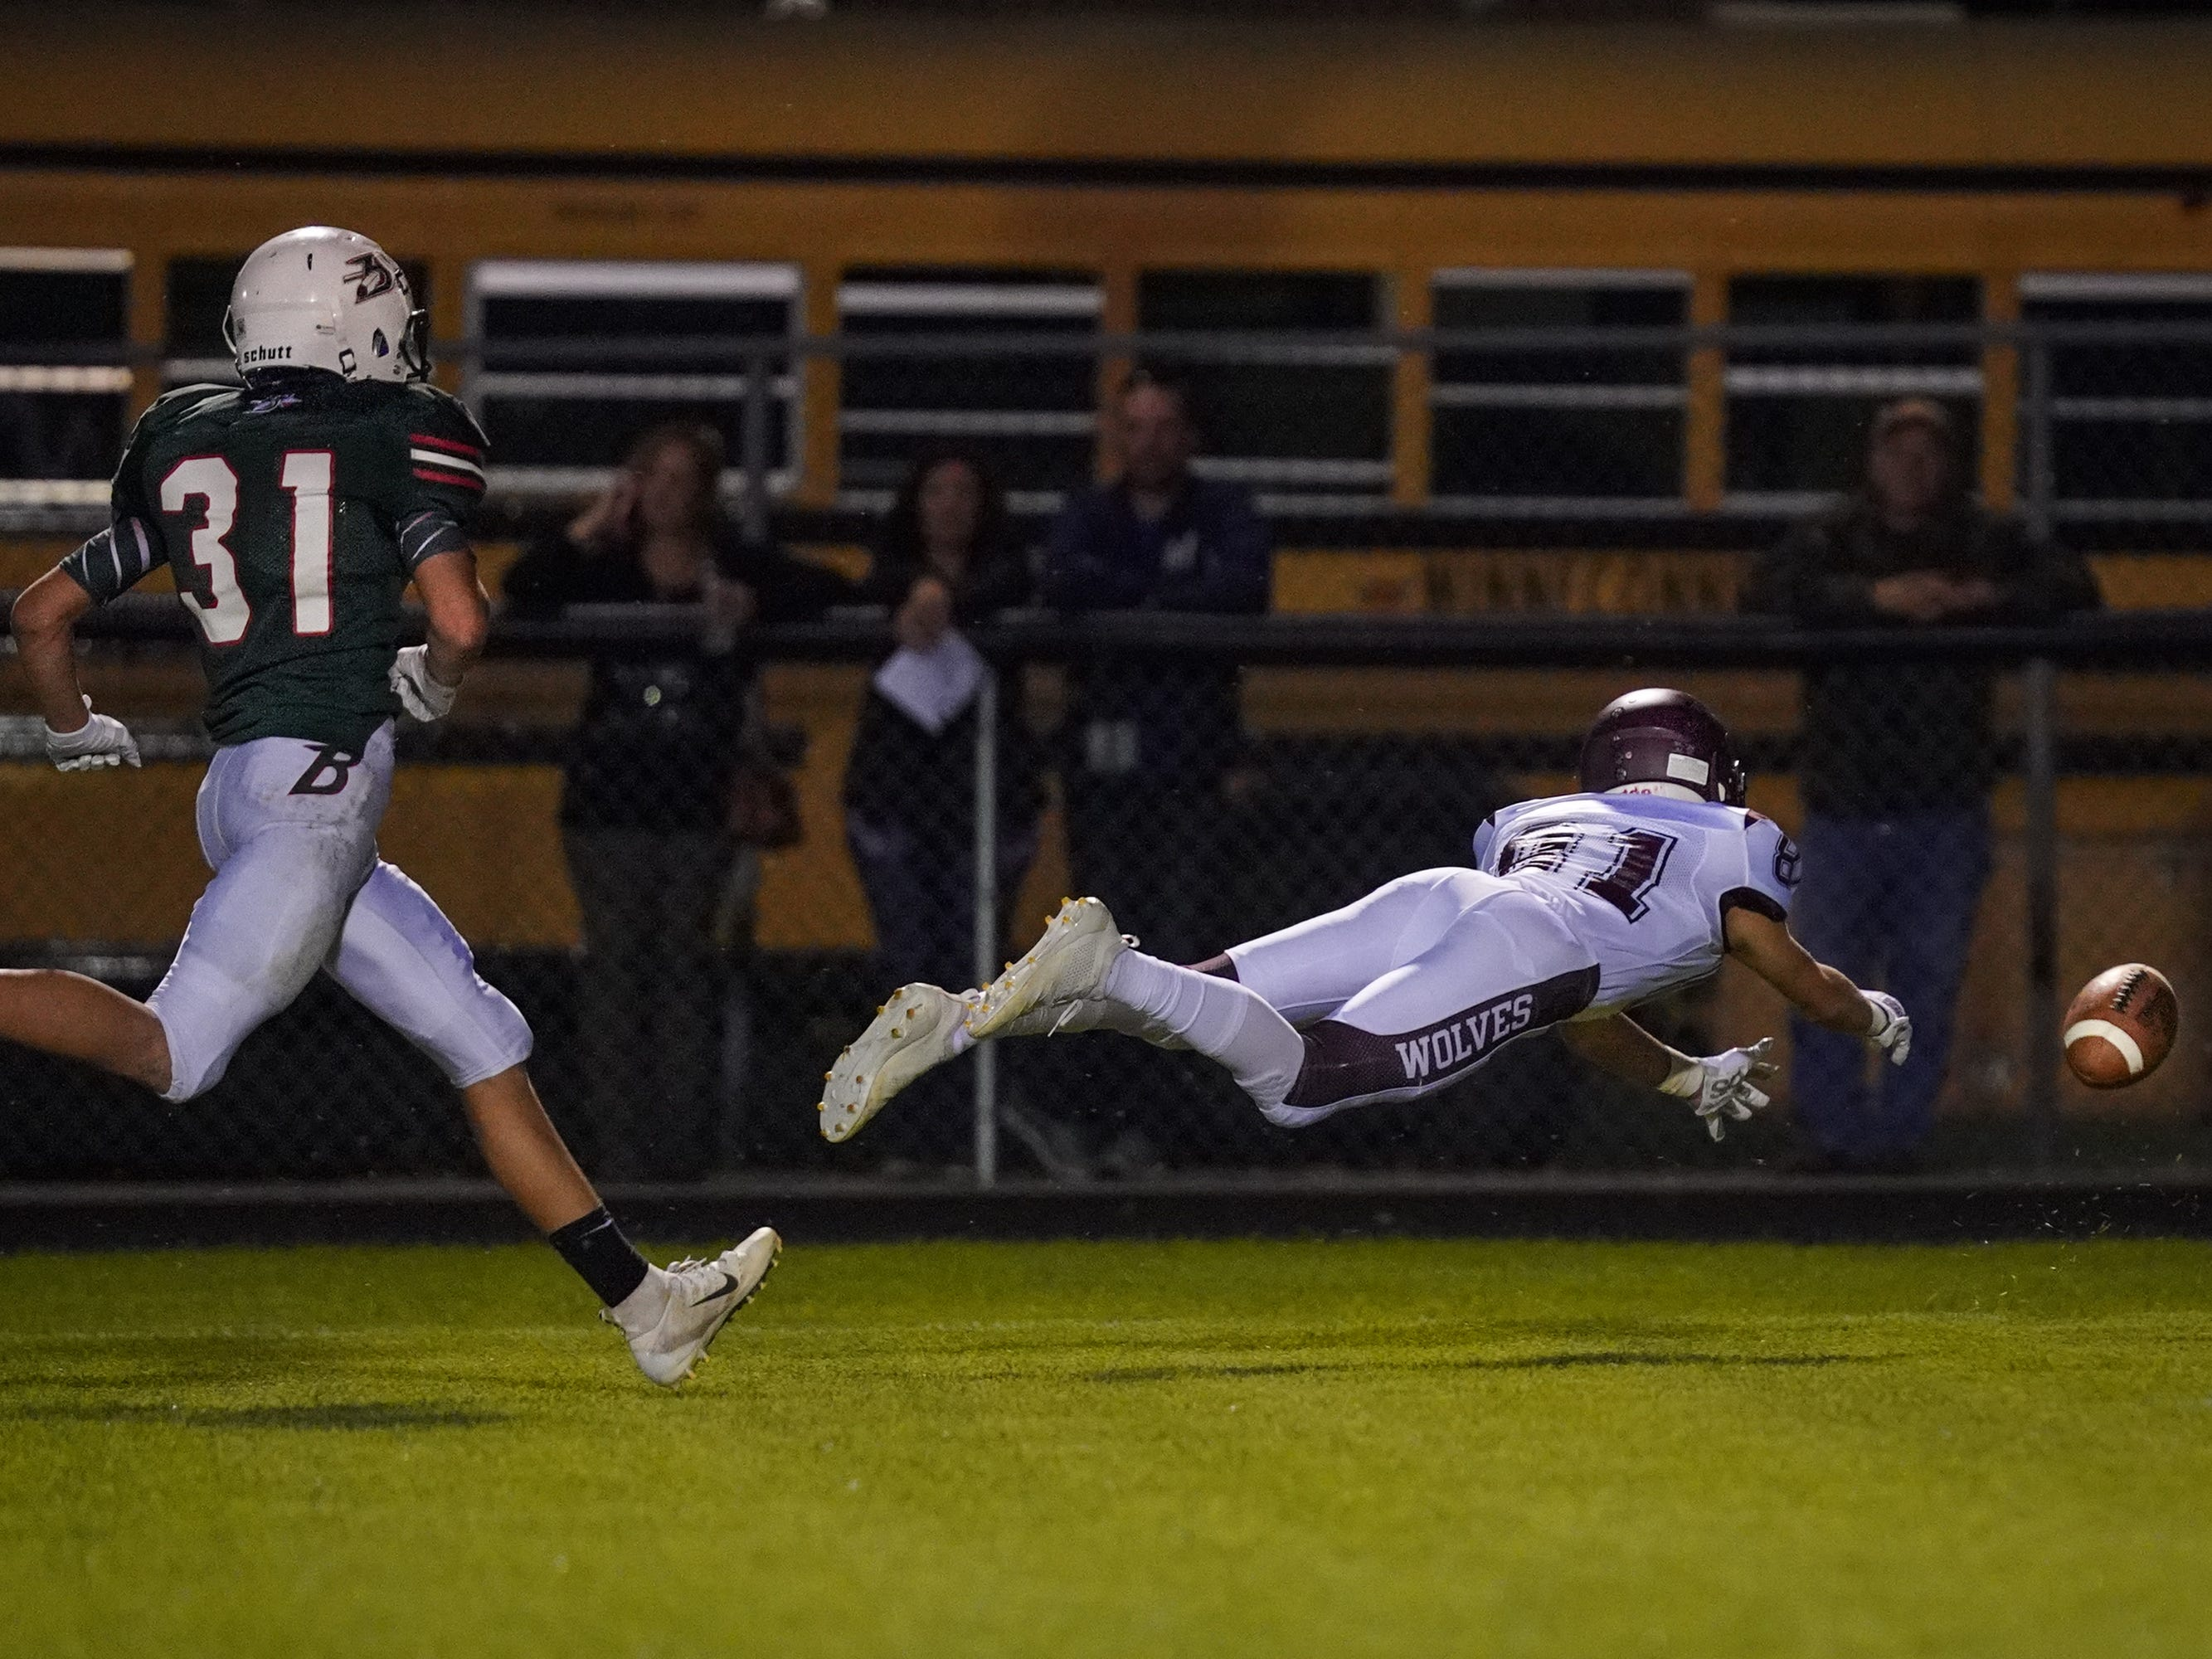 Michael Mathusek (81) of Winneconne dives for a pass. The Berlin Indians hosted the Winneconne Wolves in an East Central Conference matchup Friday evening, September 14, 2018.